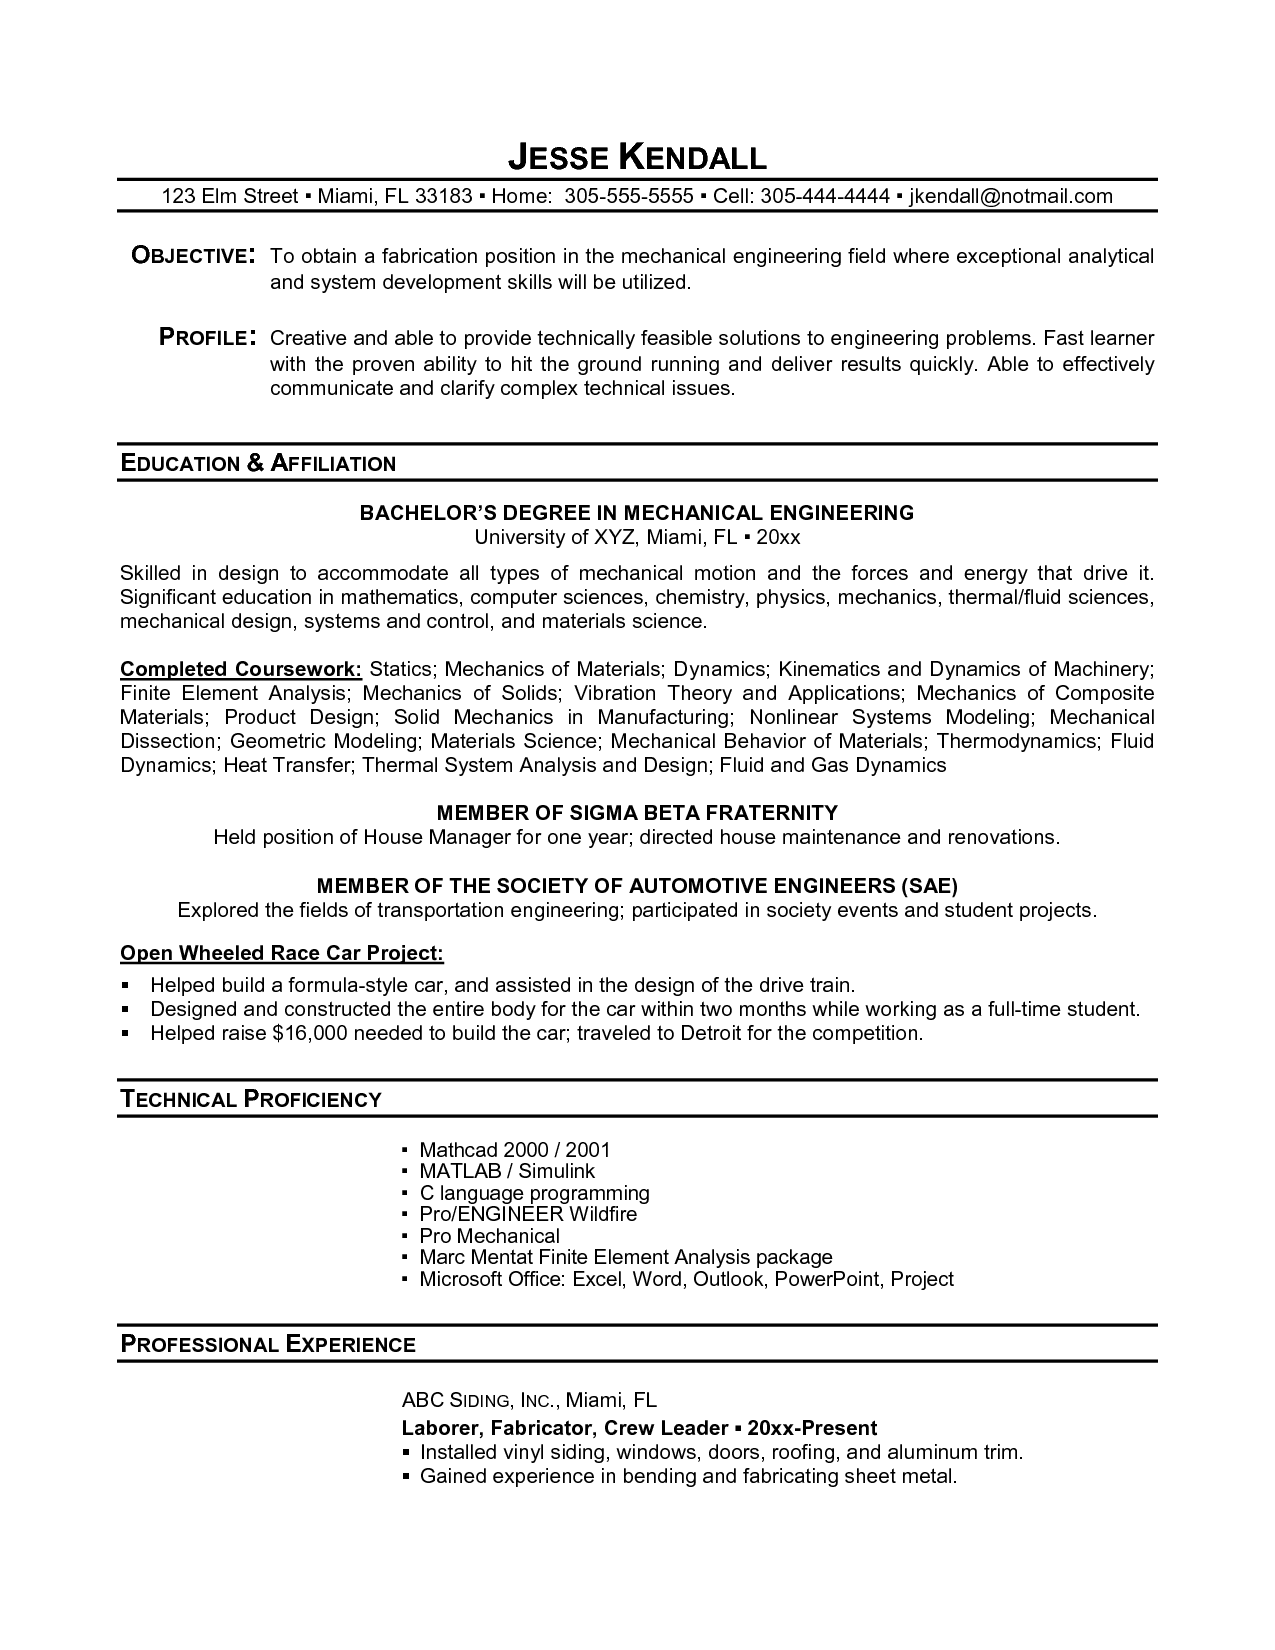 Resume examples student examples collge high school resume resume examples student examples collge high school resume samples for students examples student resume sample yelopaper Image collections